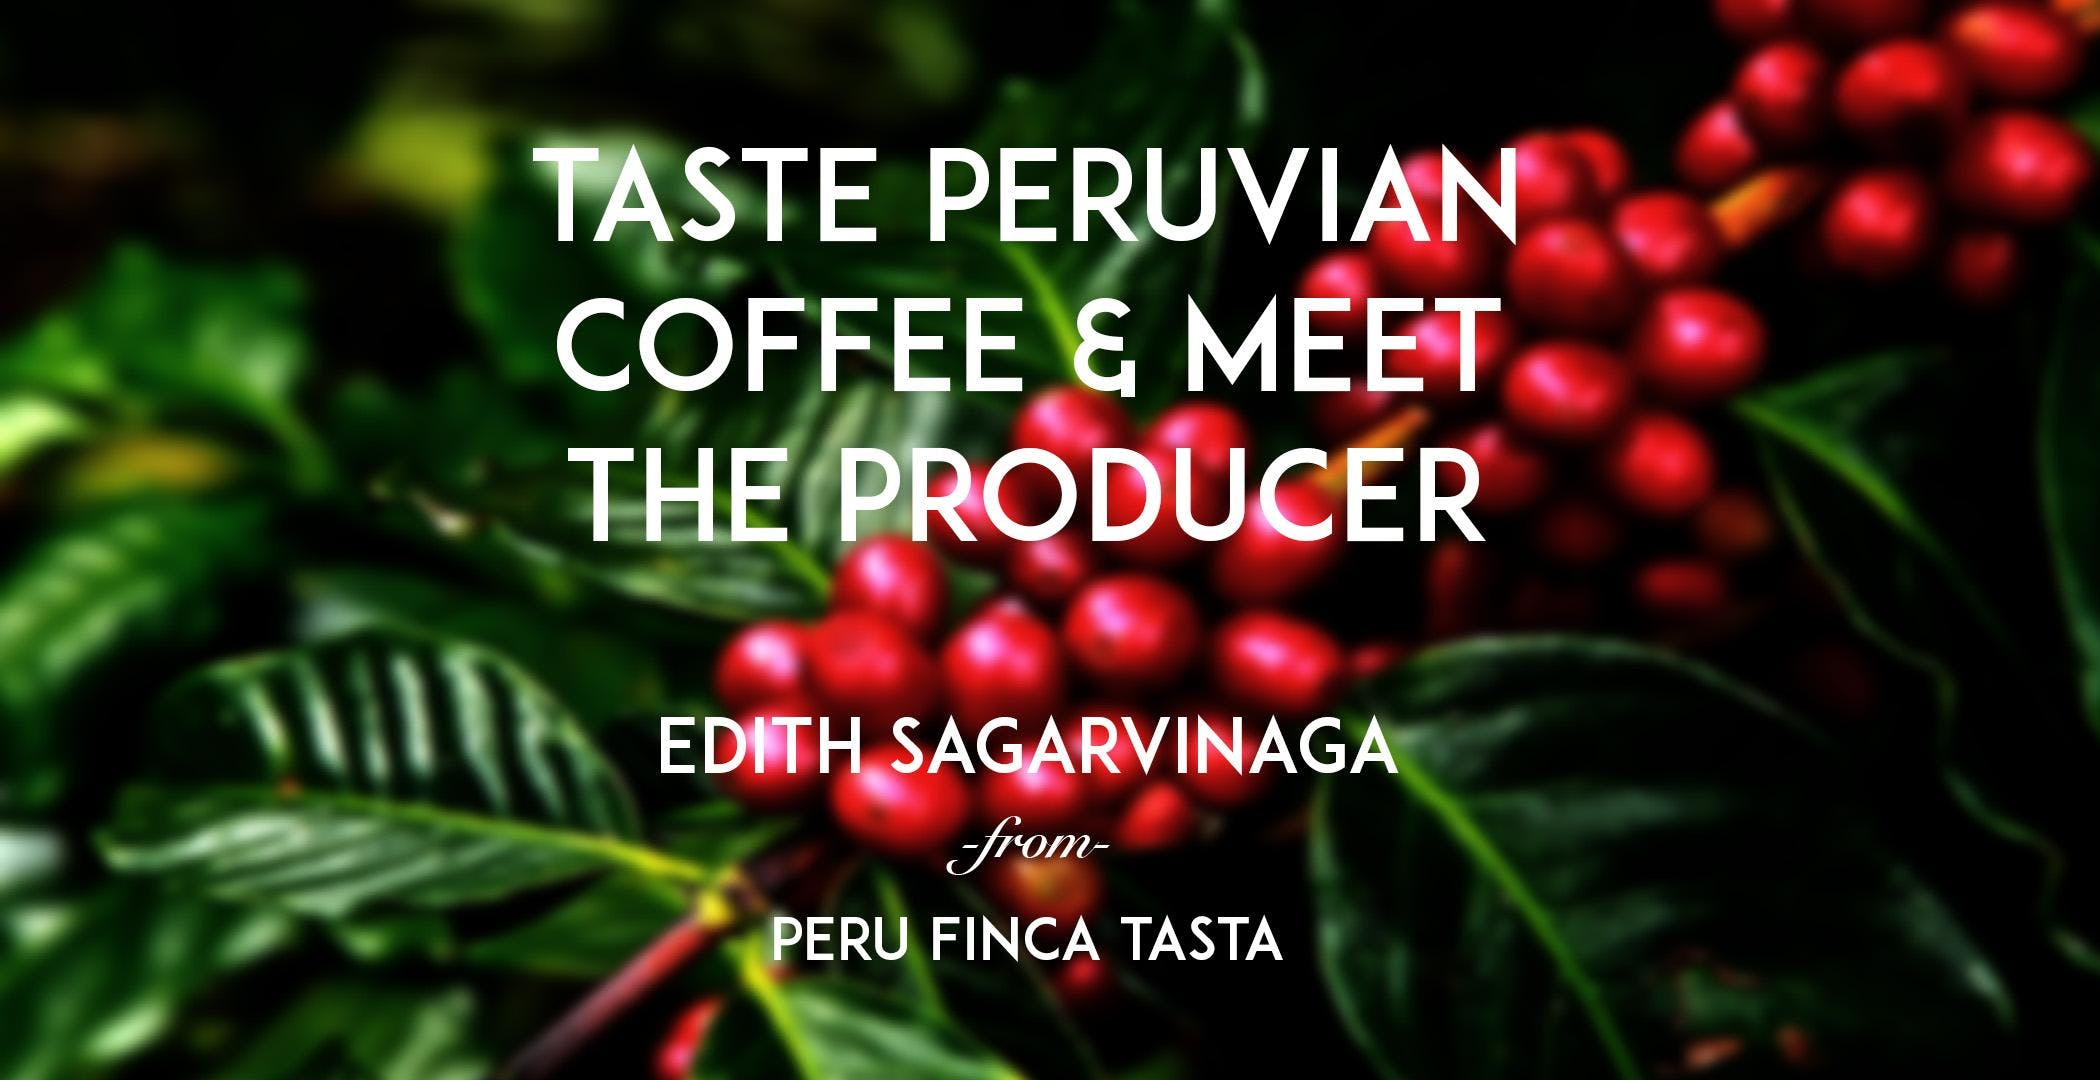 Taste Peruvian Coffee and Meet the Producer,